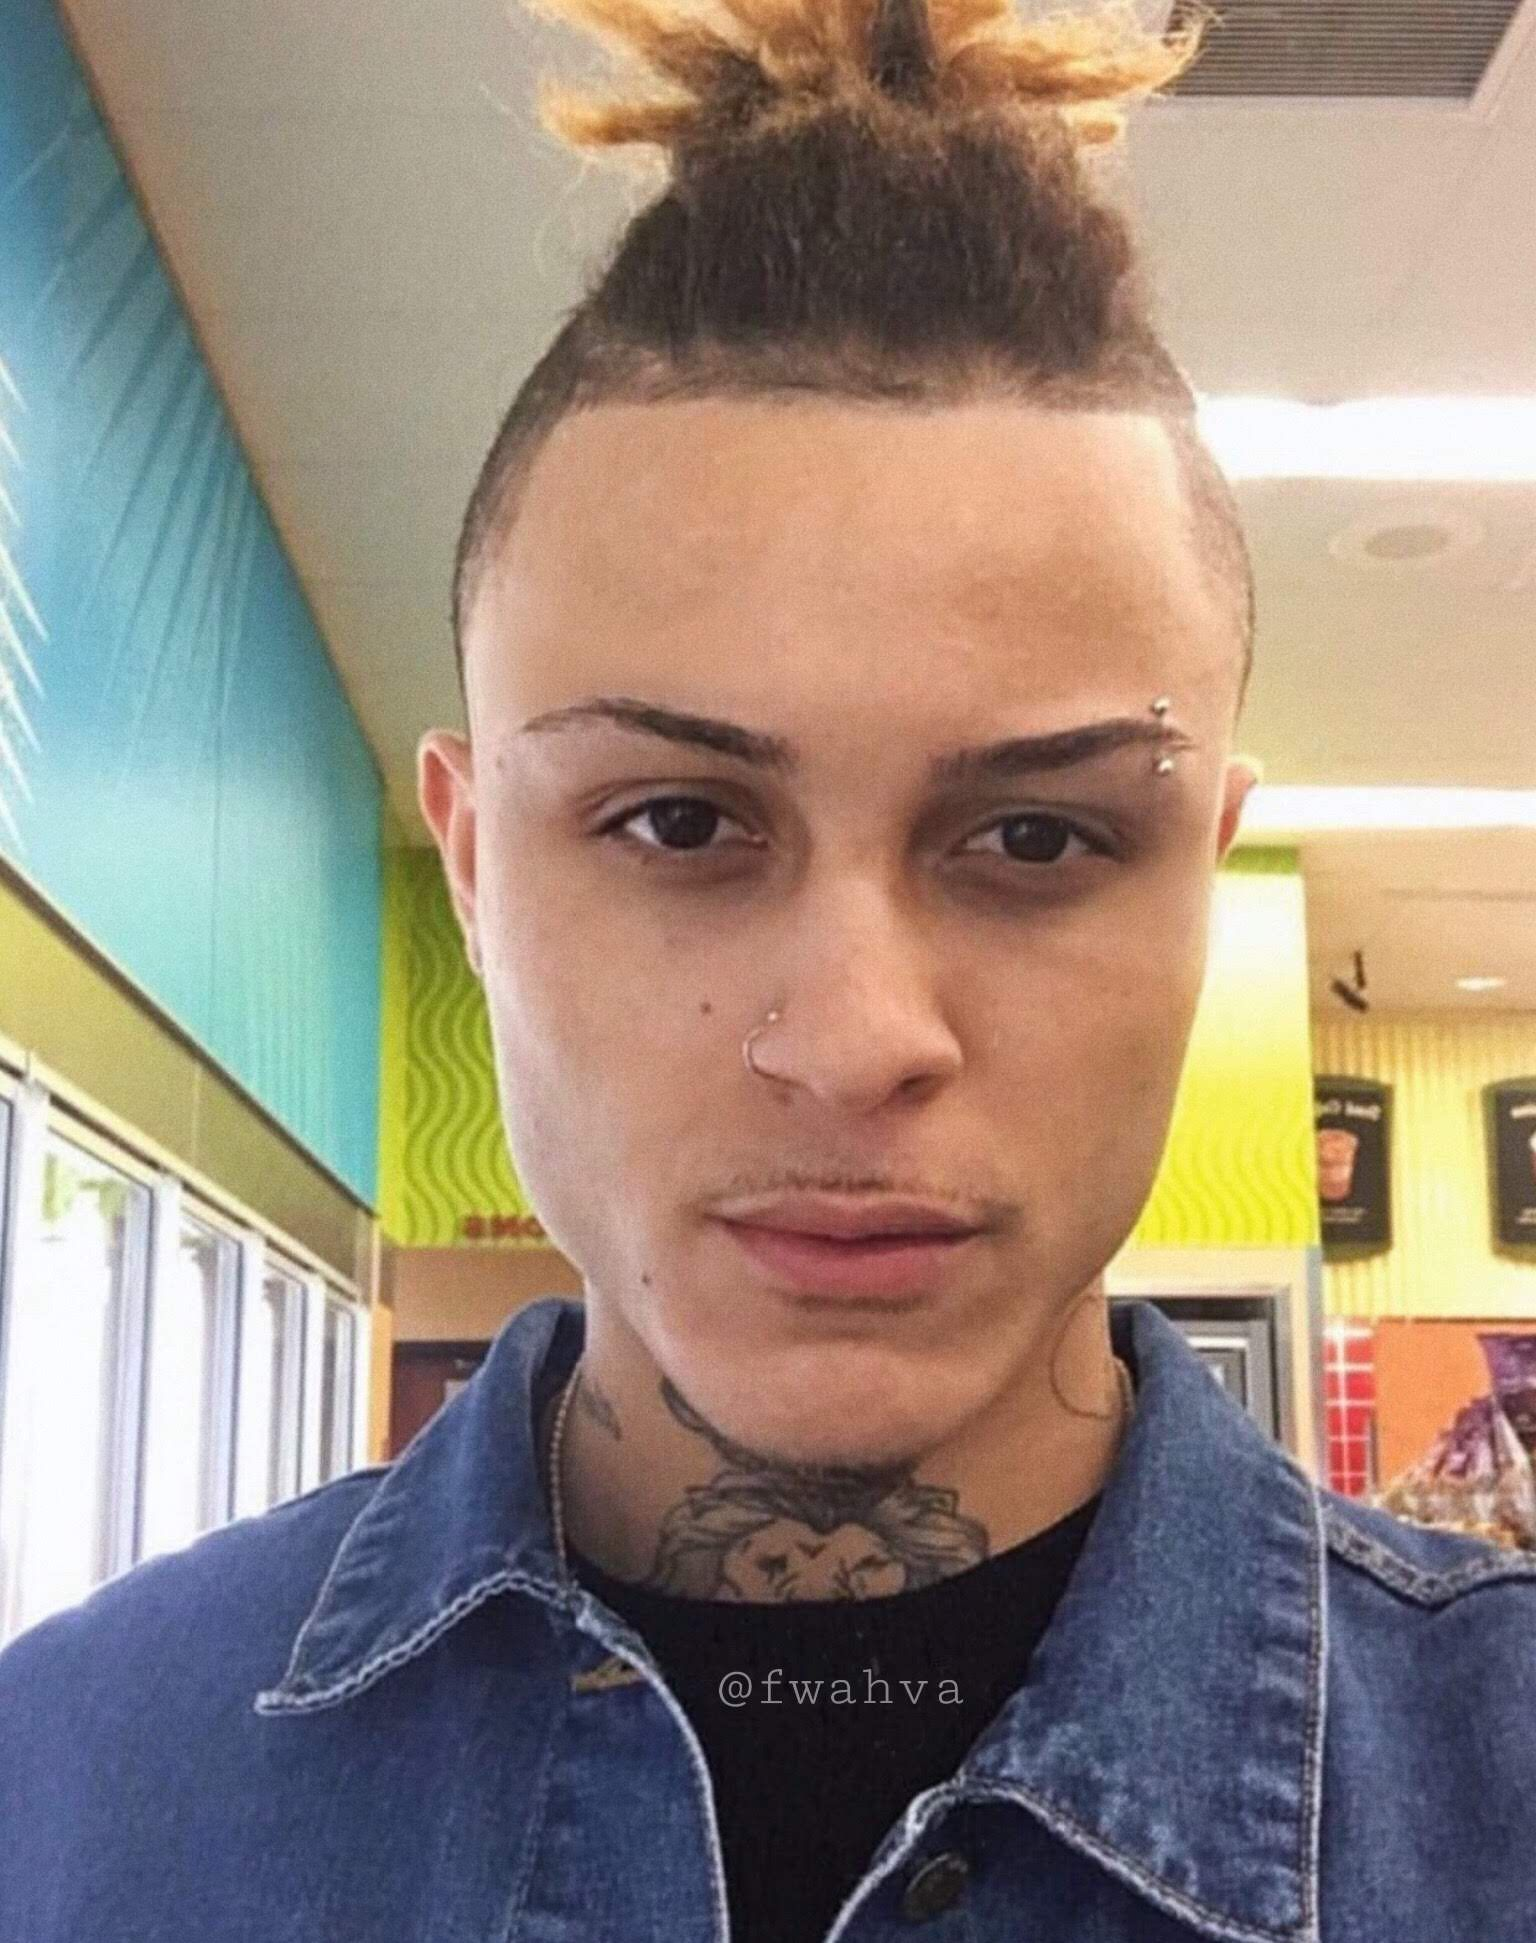 Lil Skies Face Tattoo: Edit Of Lil Skies Without Face Tattoos